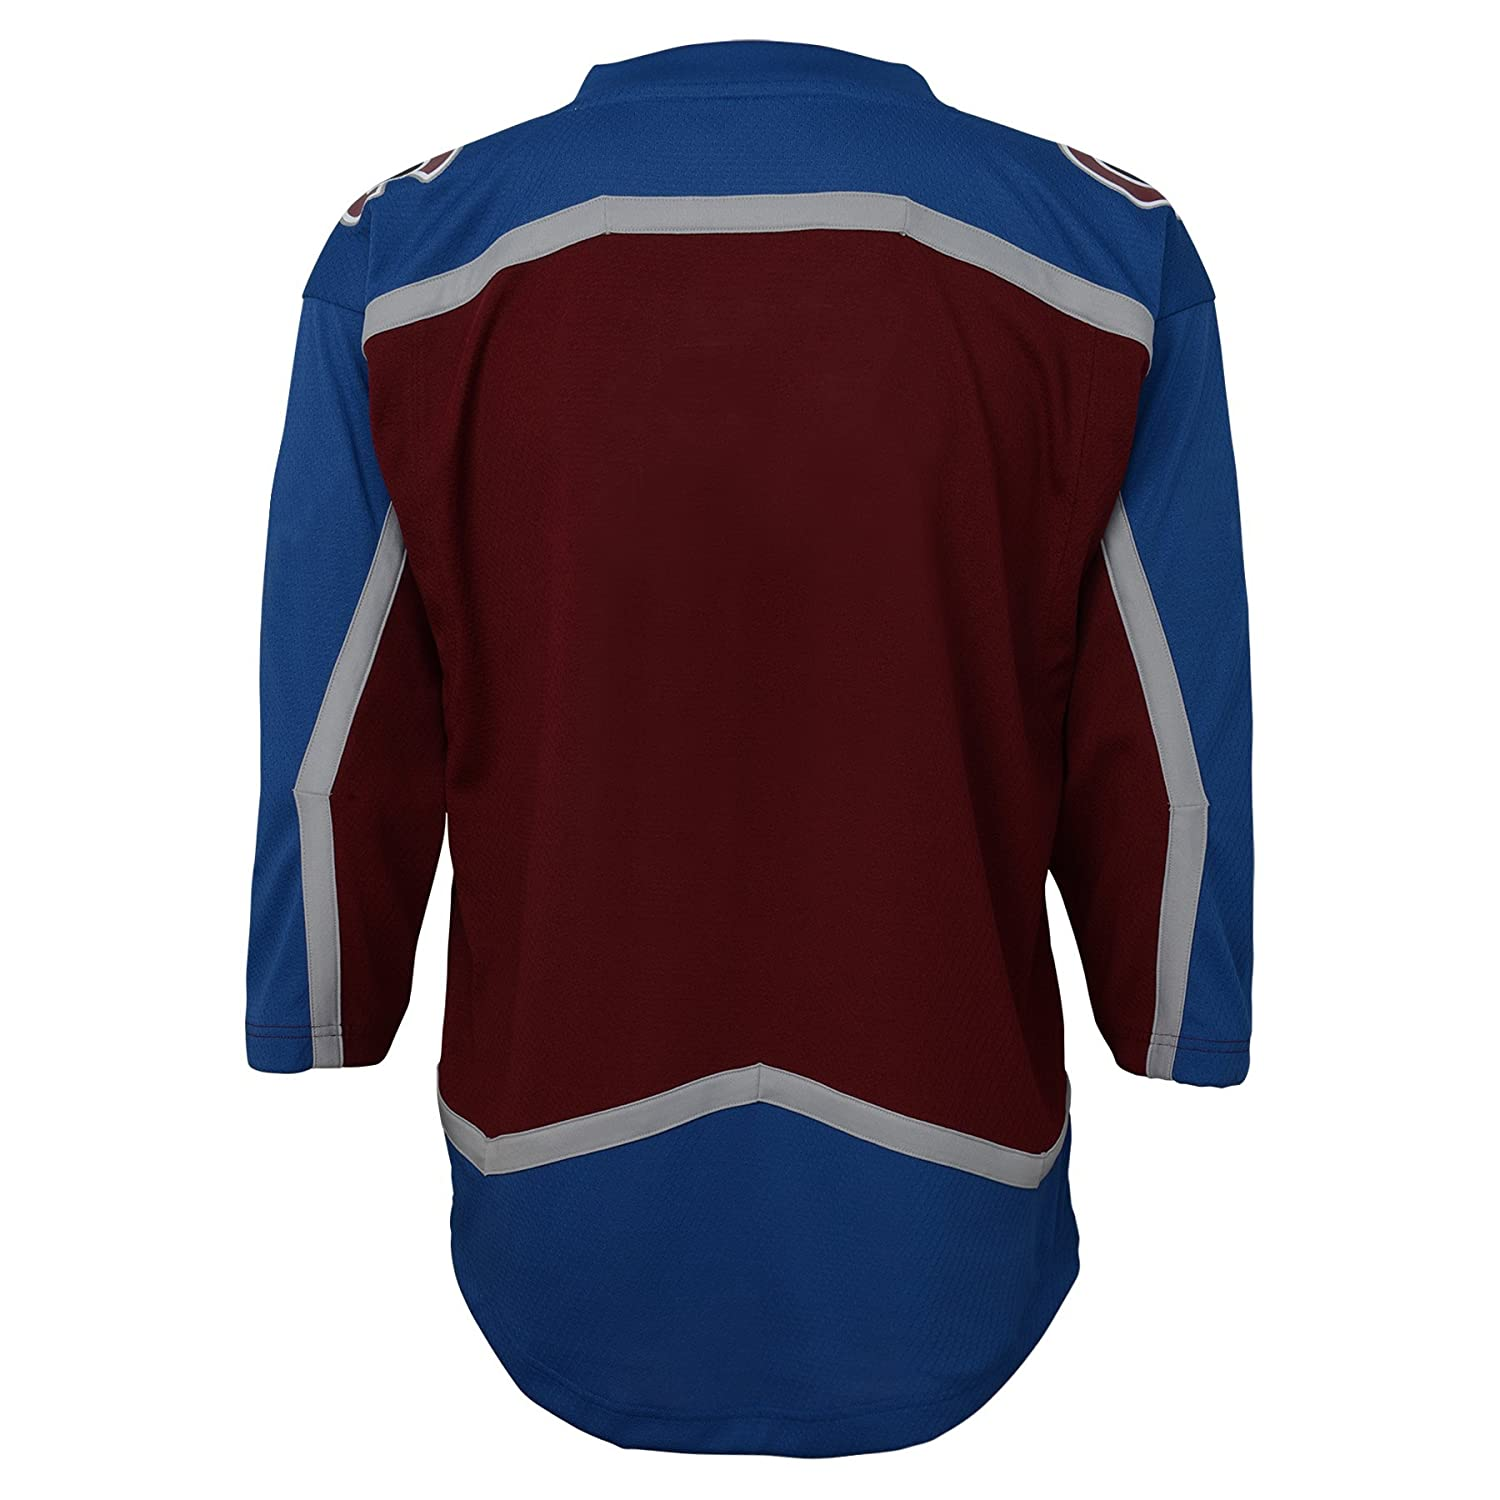 Kids One Size Burgundy Outerstuff NHL NHL Colorado Avalanche Kids /& Youth Boys Replica Jersey-Home